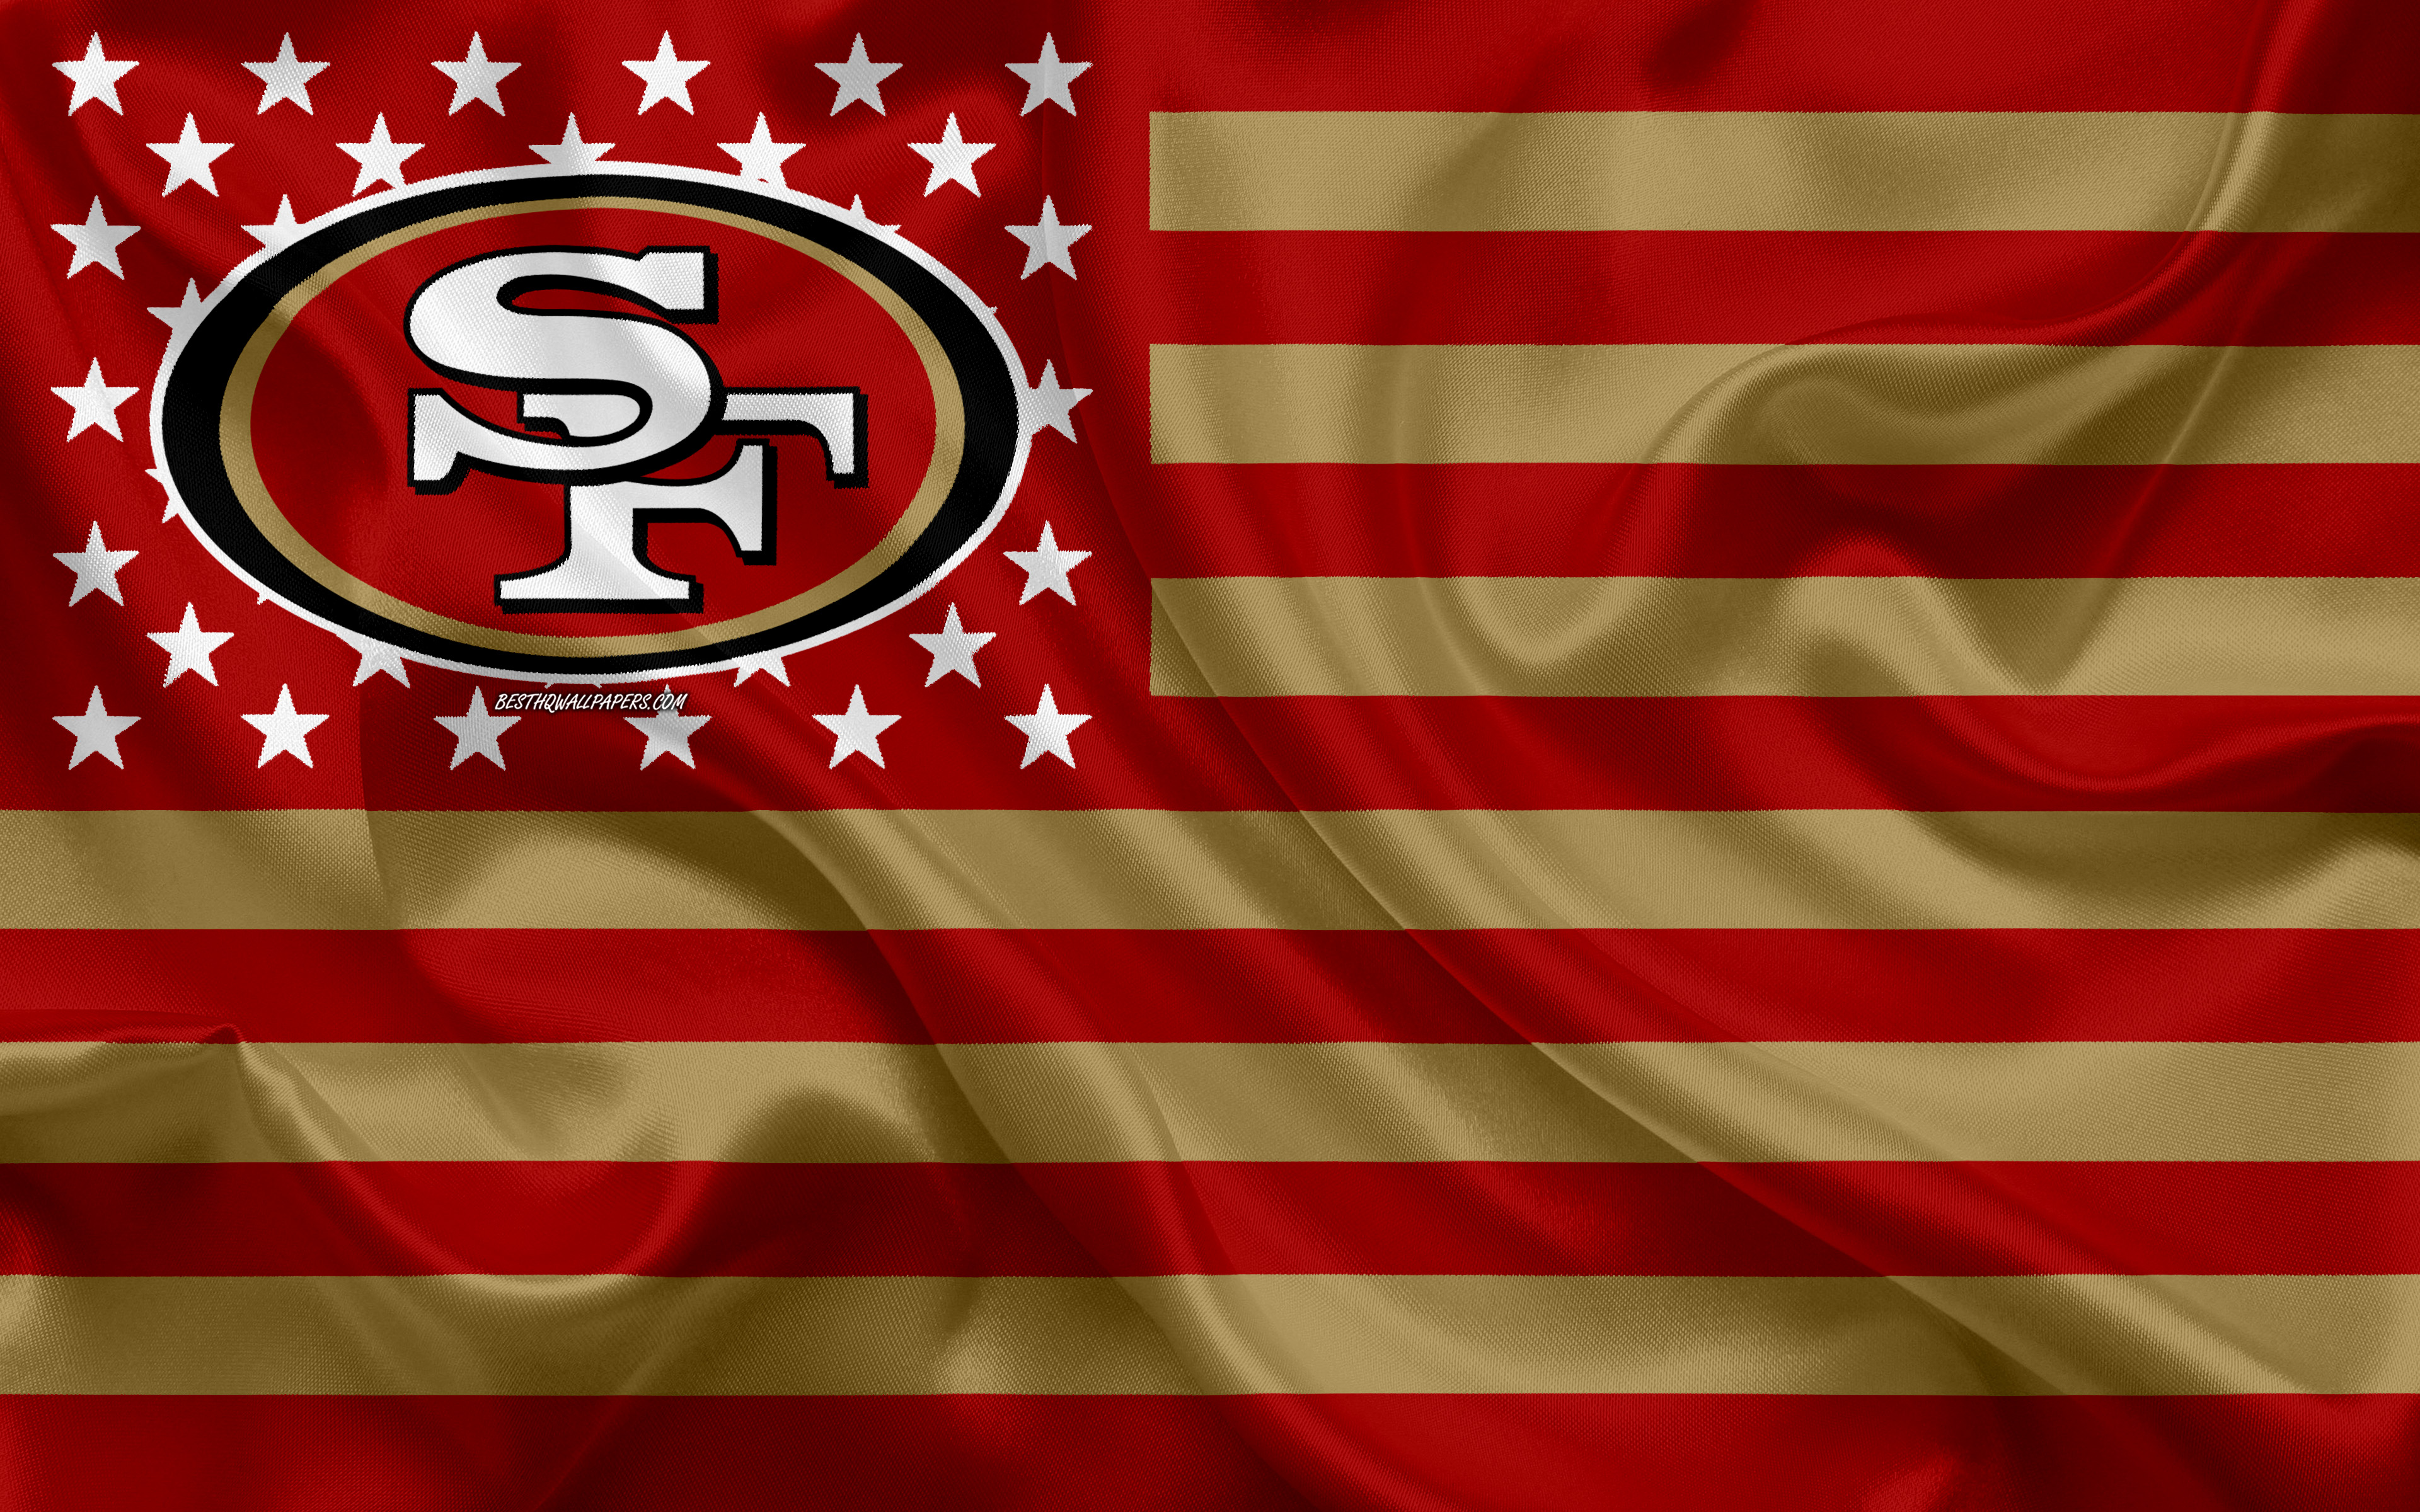 Free Download Download Wallpapers San Francisco 49ers American Football Team 3840x2400 For Your Desktop Mobile Tablet Explore 64 49ers Desktop Wallpaper San Francisco 49ers Desktop Wallpaper 49ers Wallpaper Hd